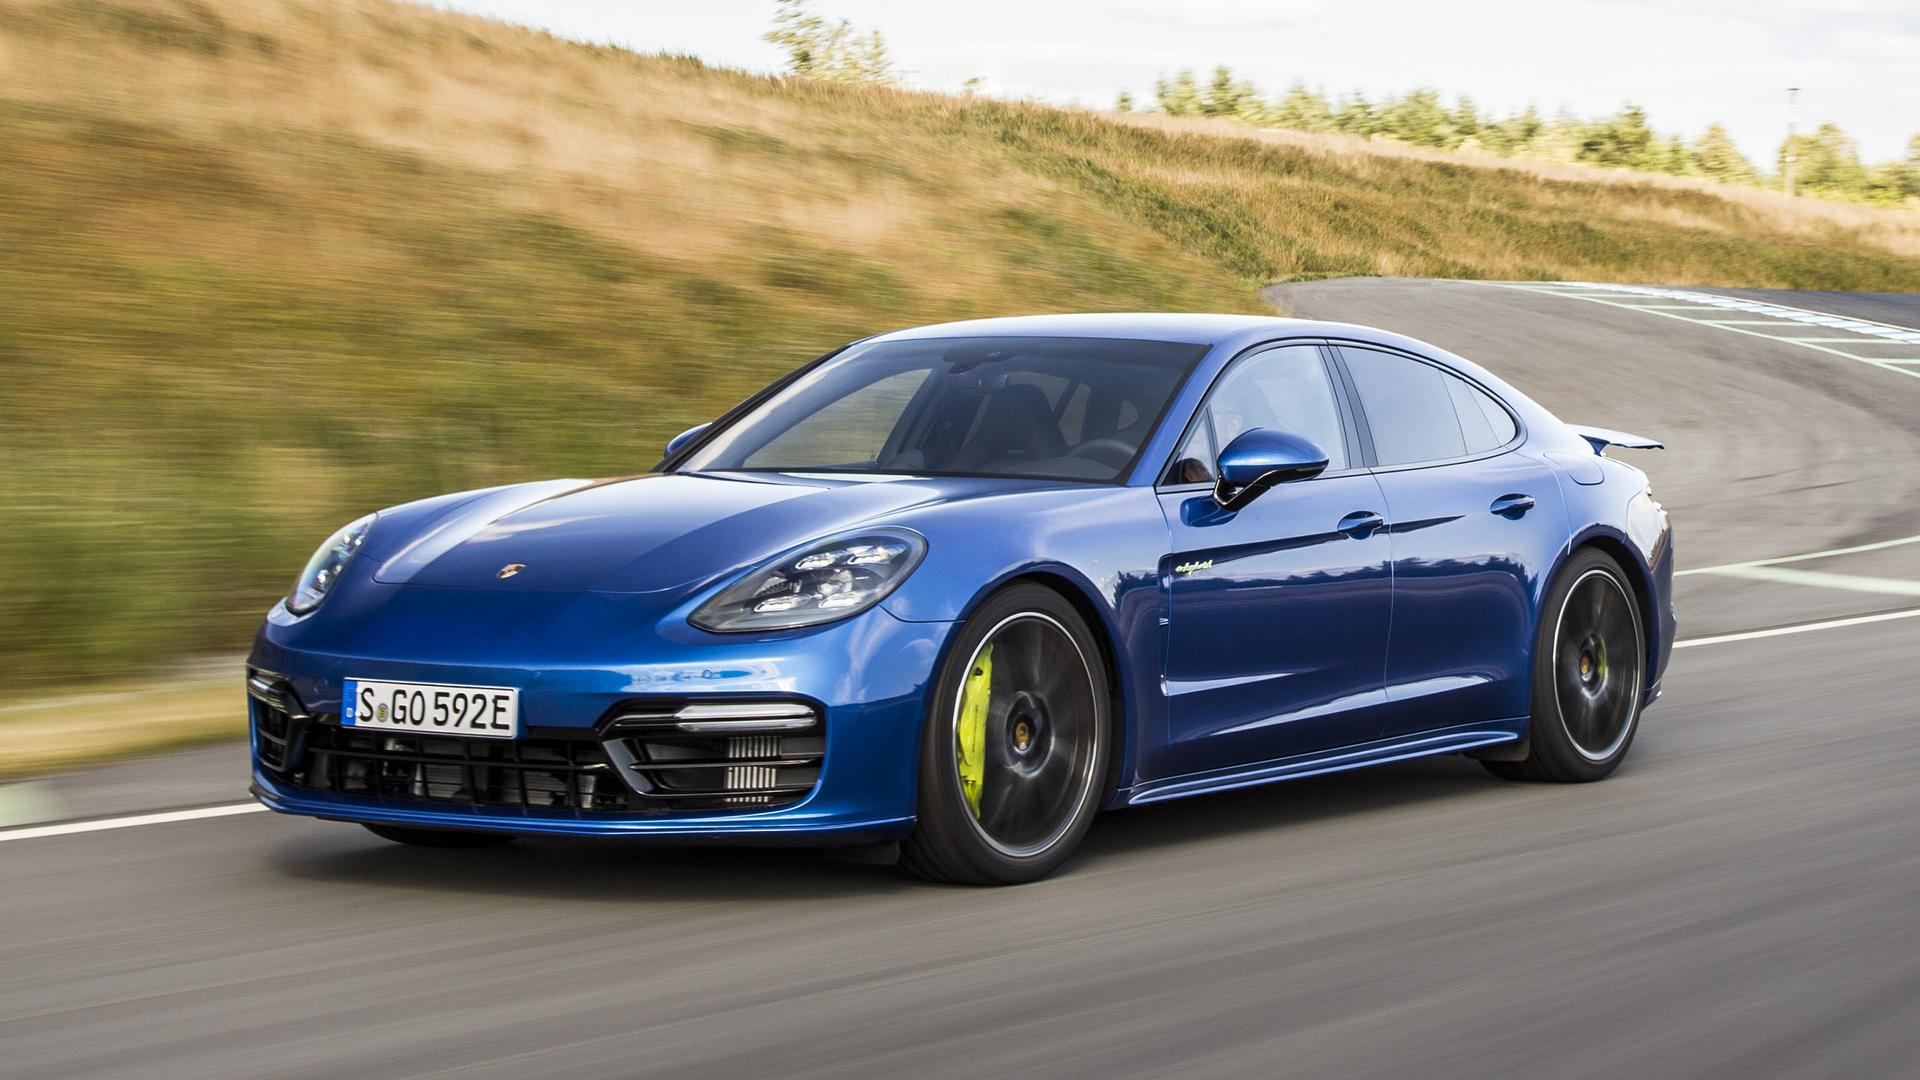 2017 porsche panamera turbo s 2017 2018 best car reviews 2017 2018 - 2018 Porsche Panamera Turbo S E Hybrid Review The Future Is Awesome Product 2017 08 02 16 00 02